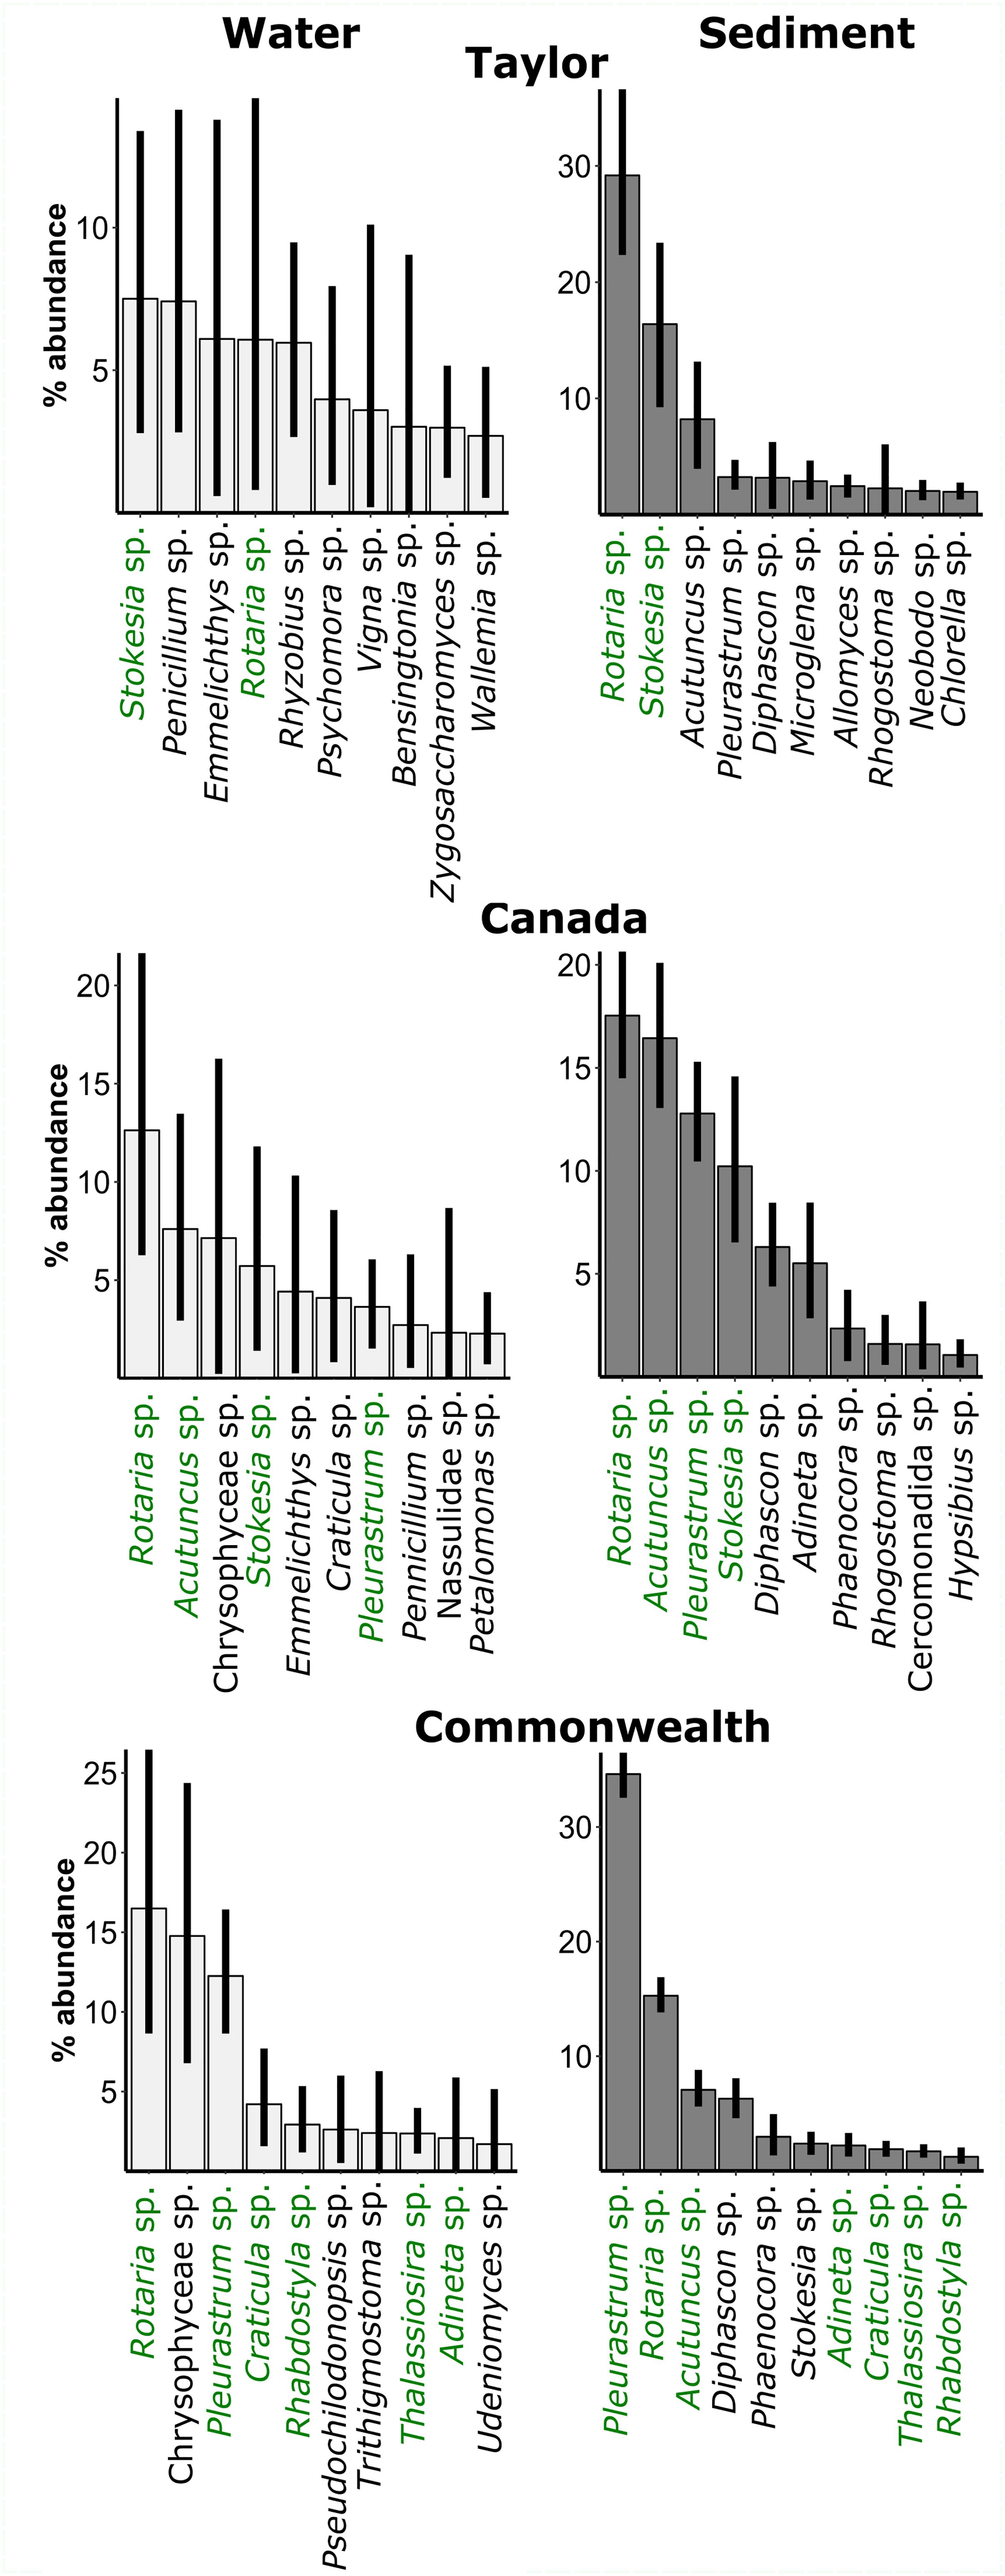 Frontiers | Comparison of Microbial Communities in the Sediments and